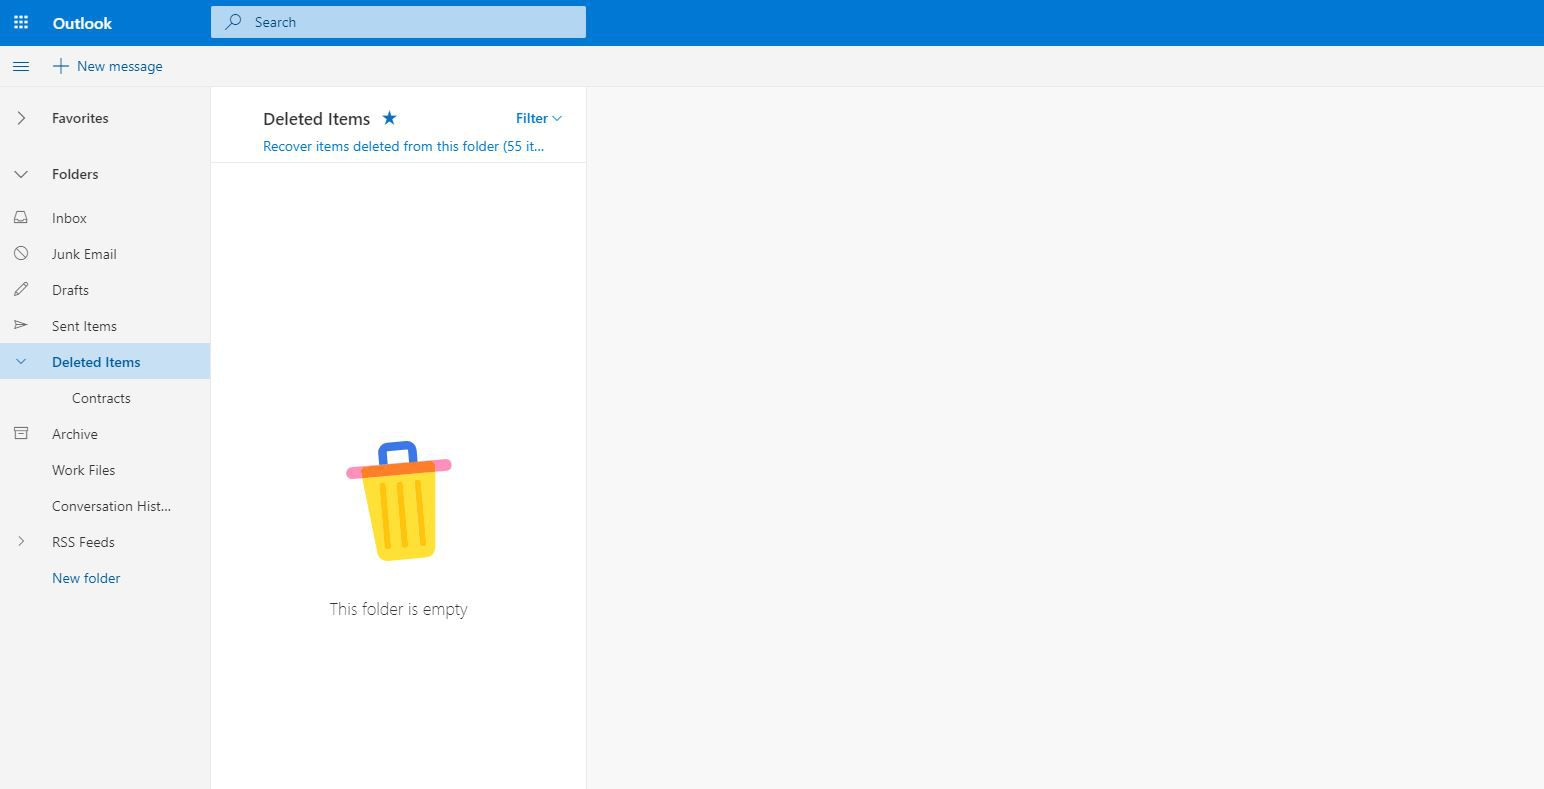 Deleted Items in Outlook.com